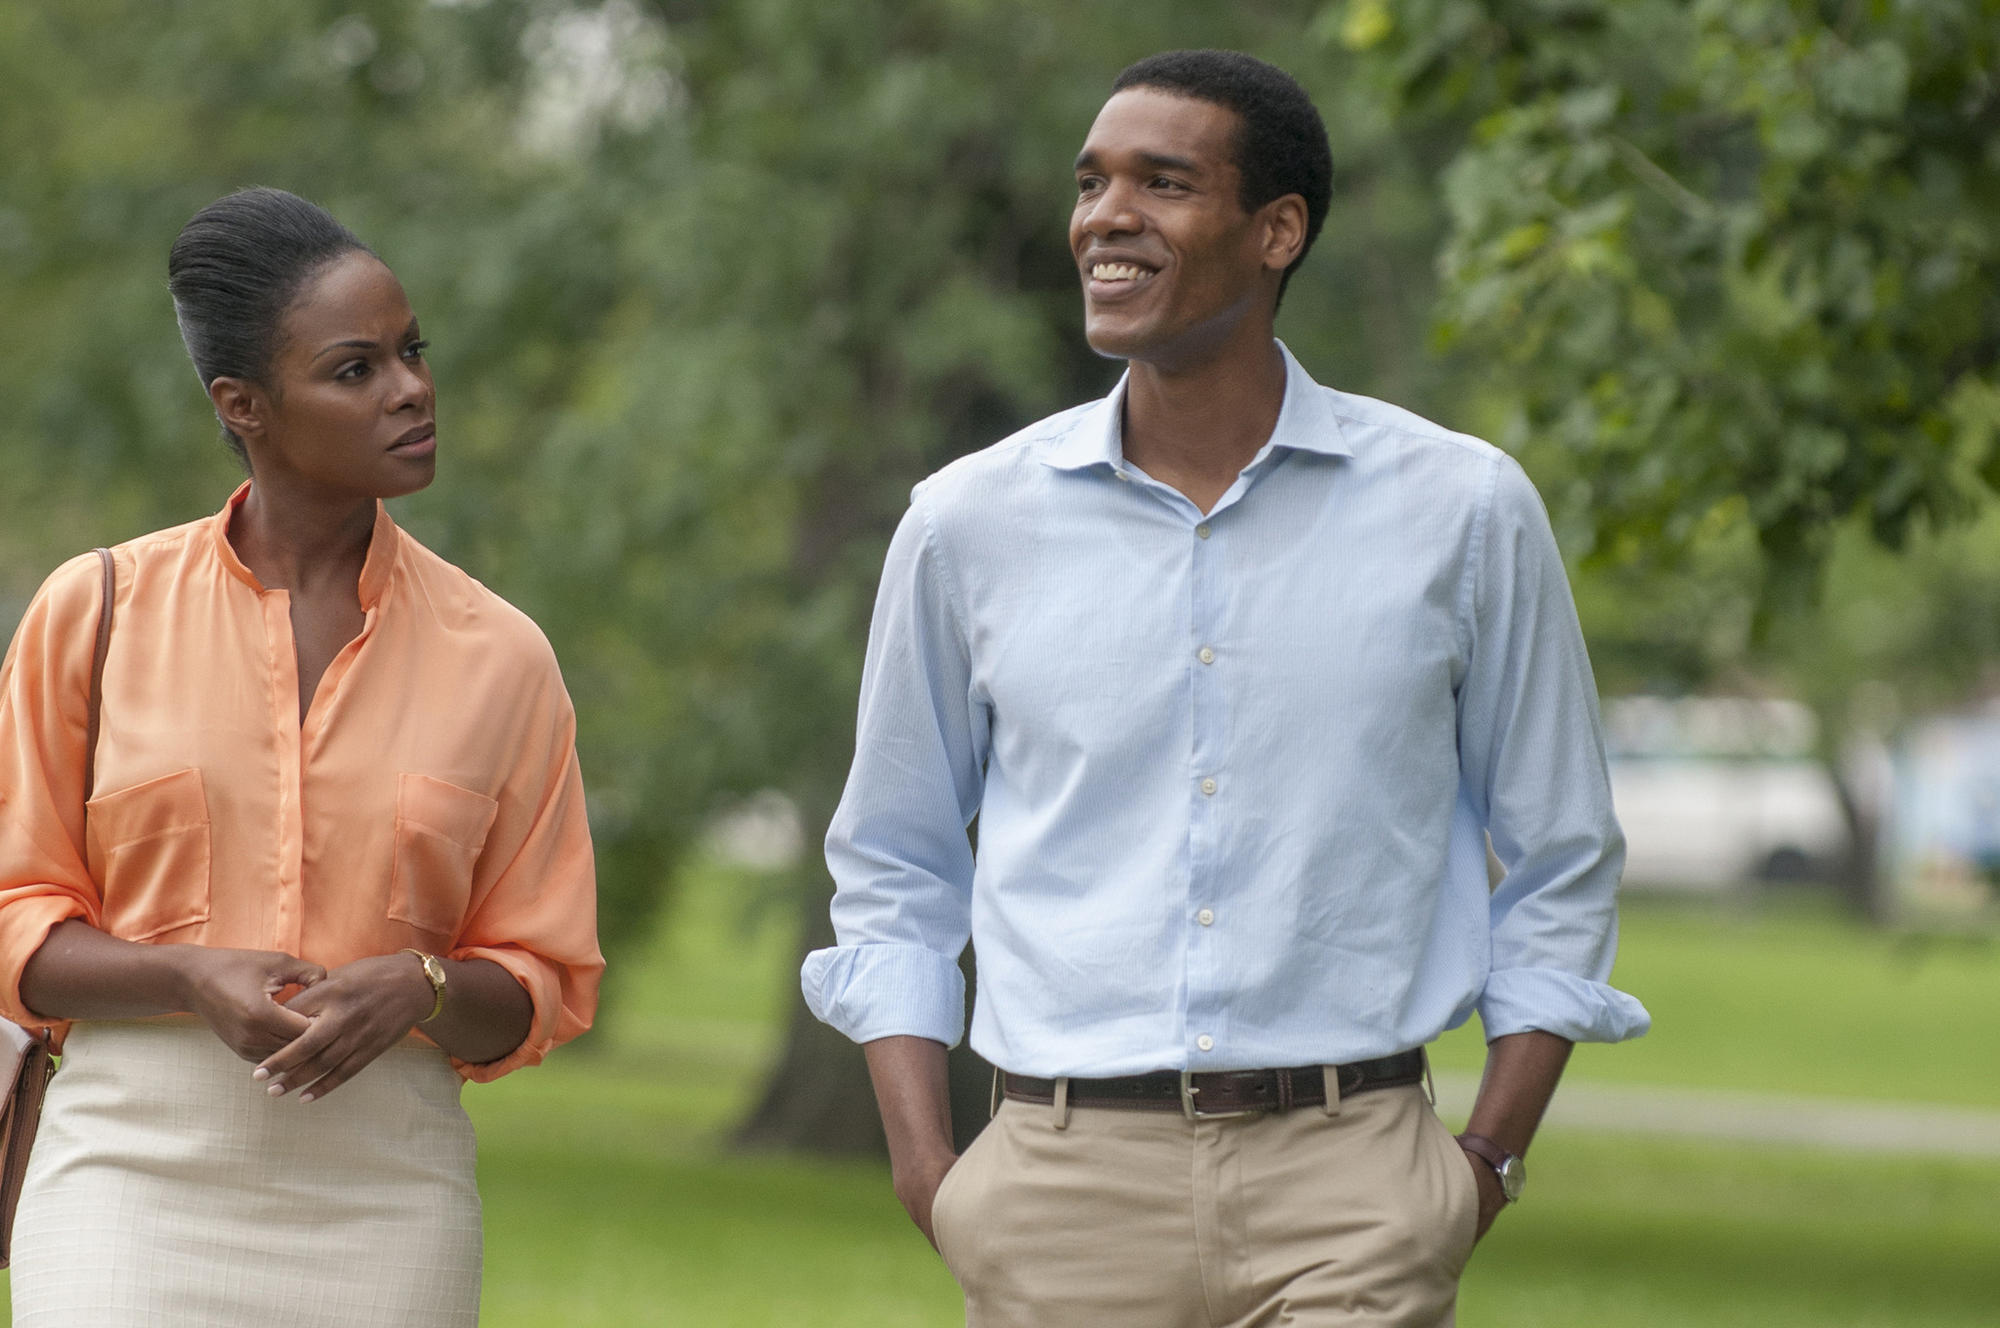 Tika Sumpter as Michelle Robinson and Parker Sawyers as Barack Obama in 'Southside With You.'